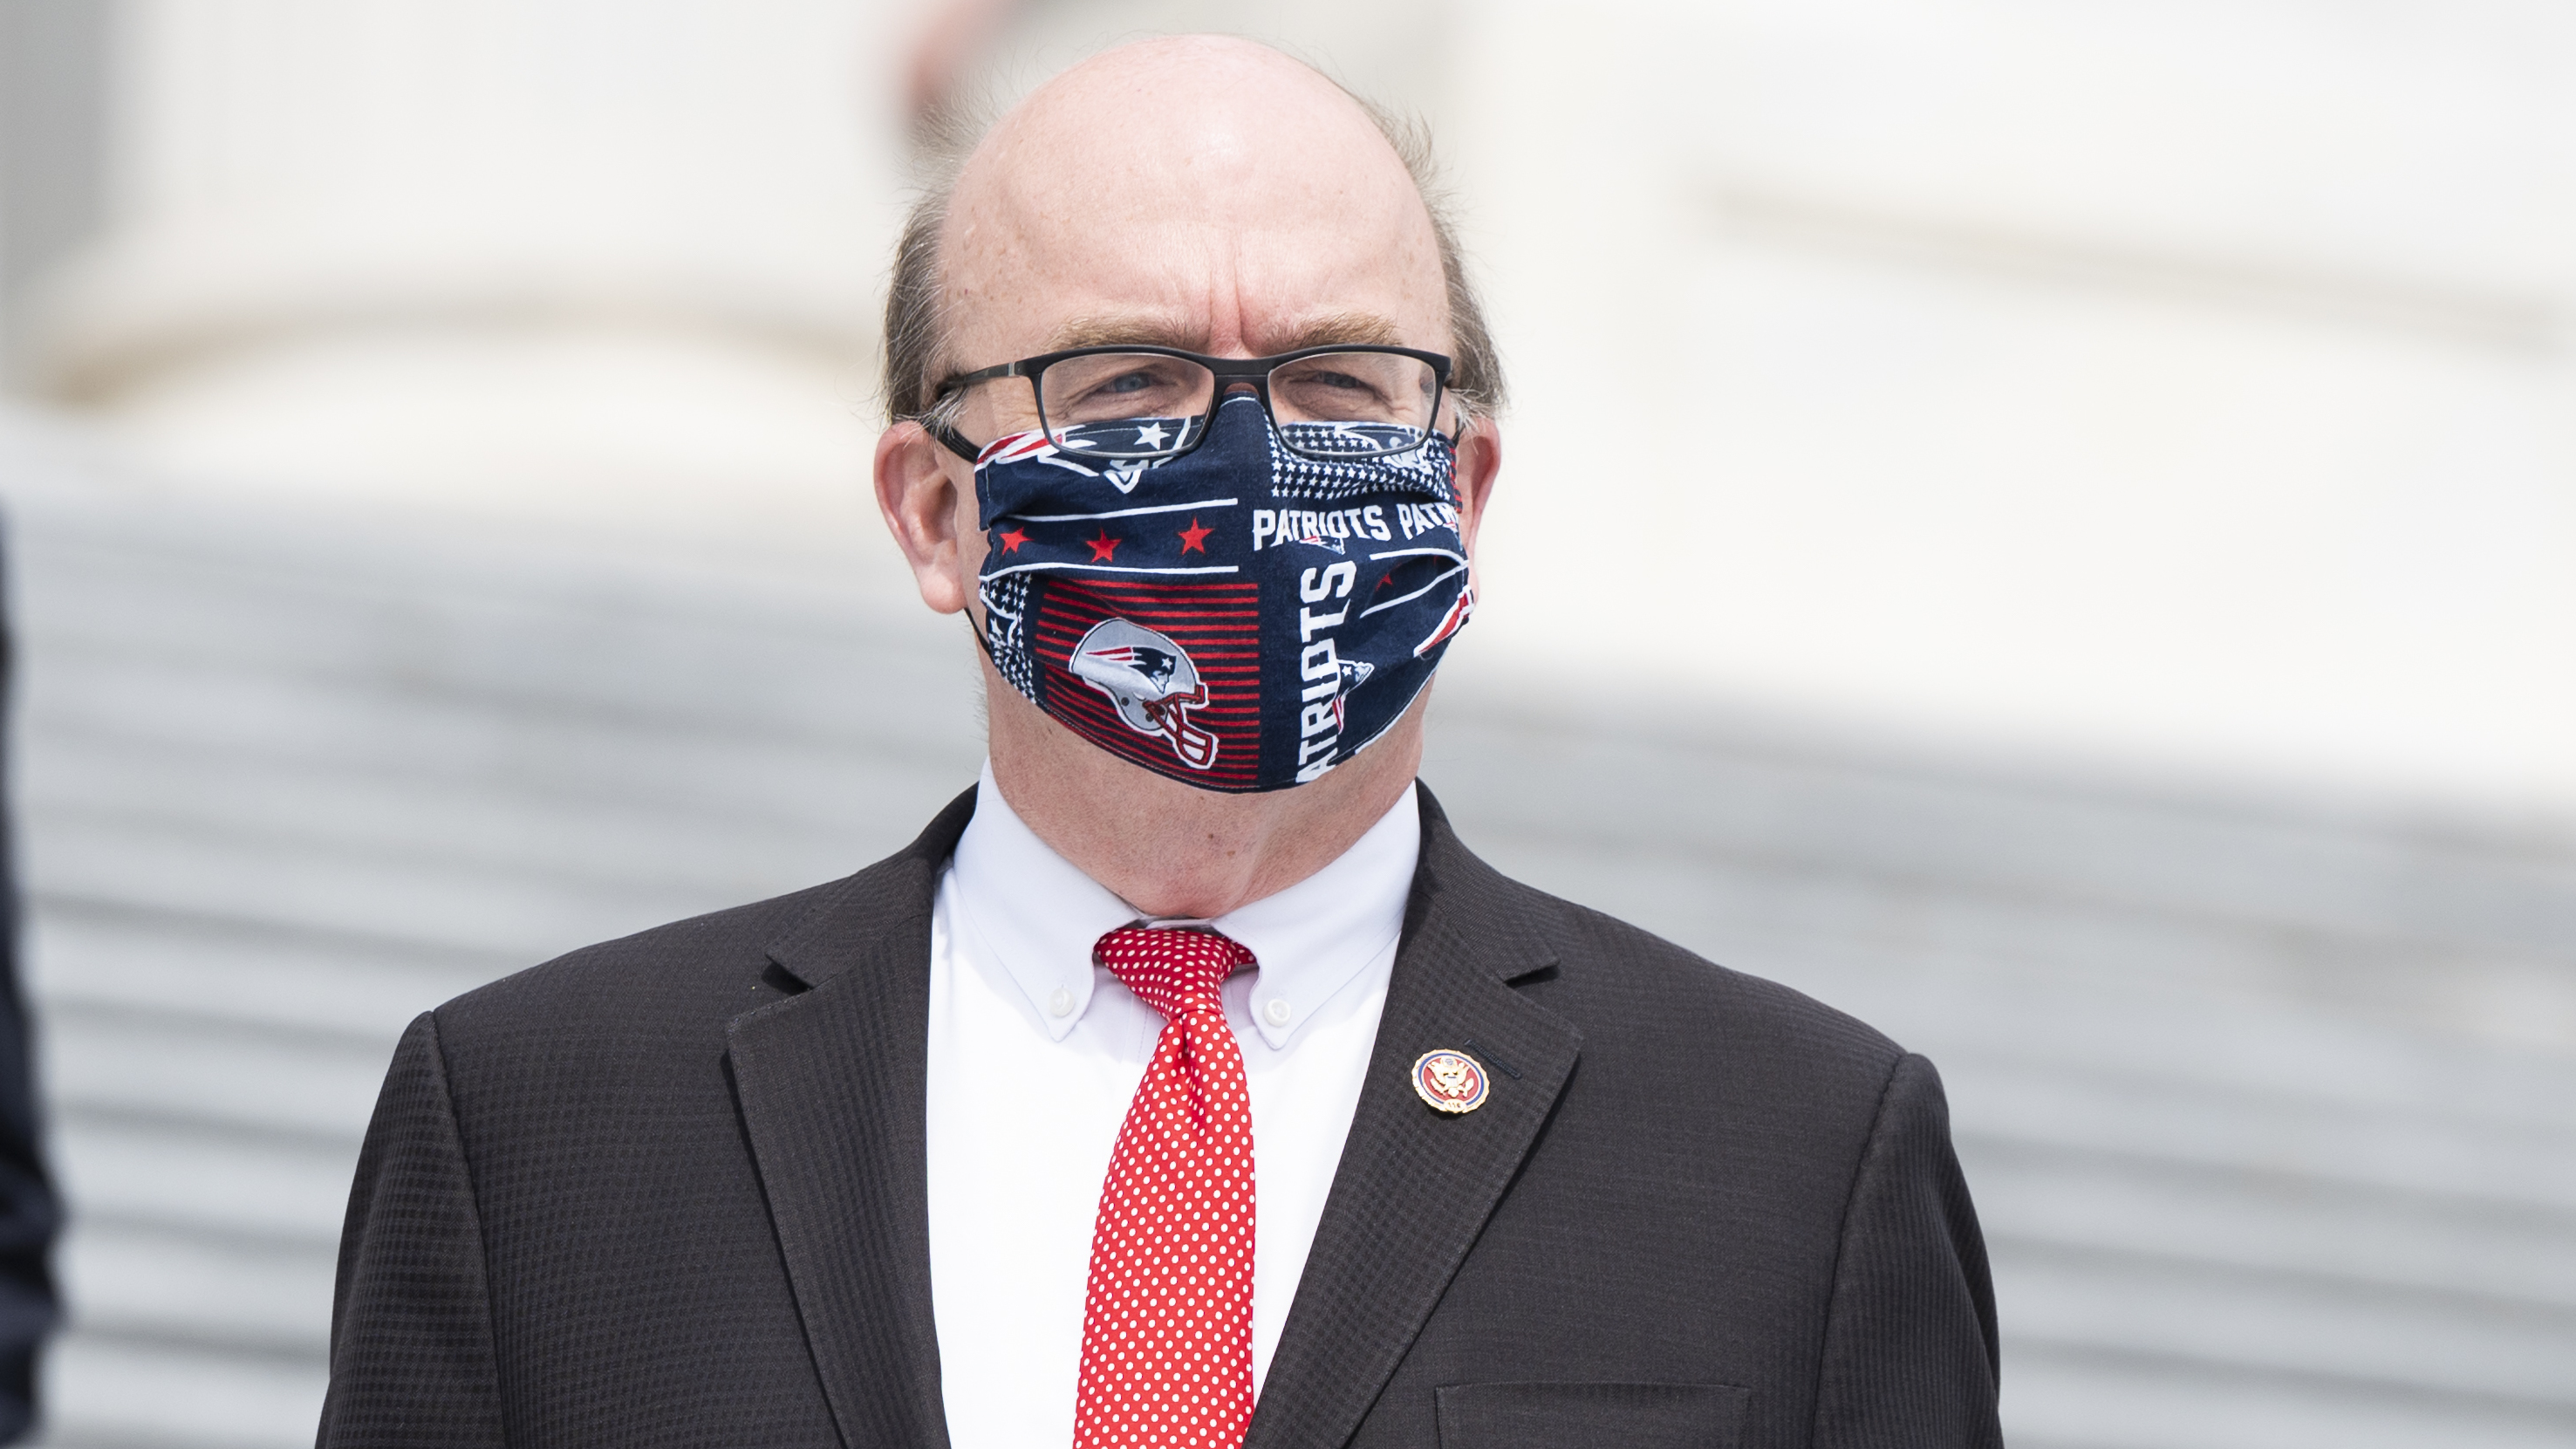 """""""This was a well-organized attack on our country that was incited by Donald Trump,"""" Rep. Jim McGovern, D-Mass., said as he opened debate on a resolution to impeach the president."""